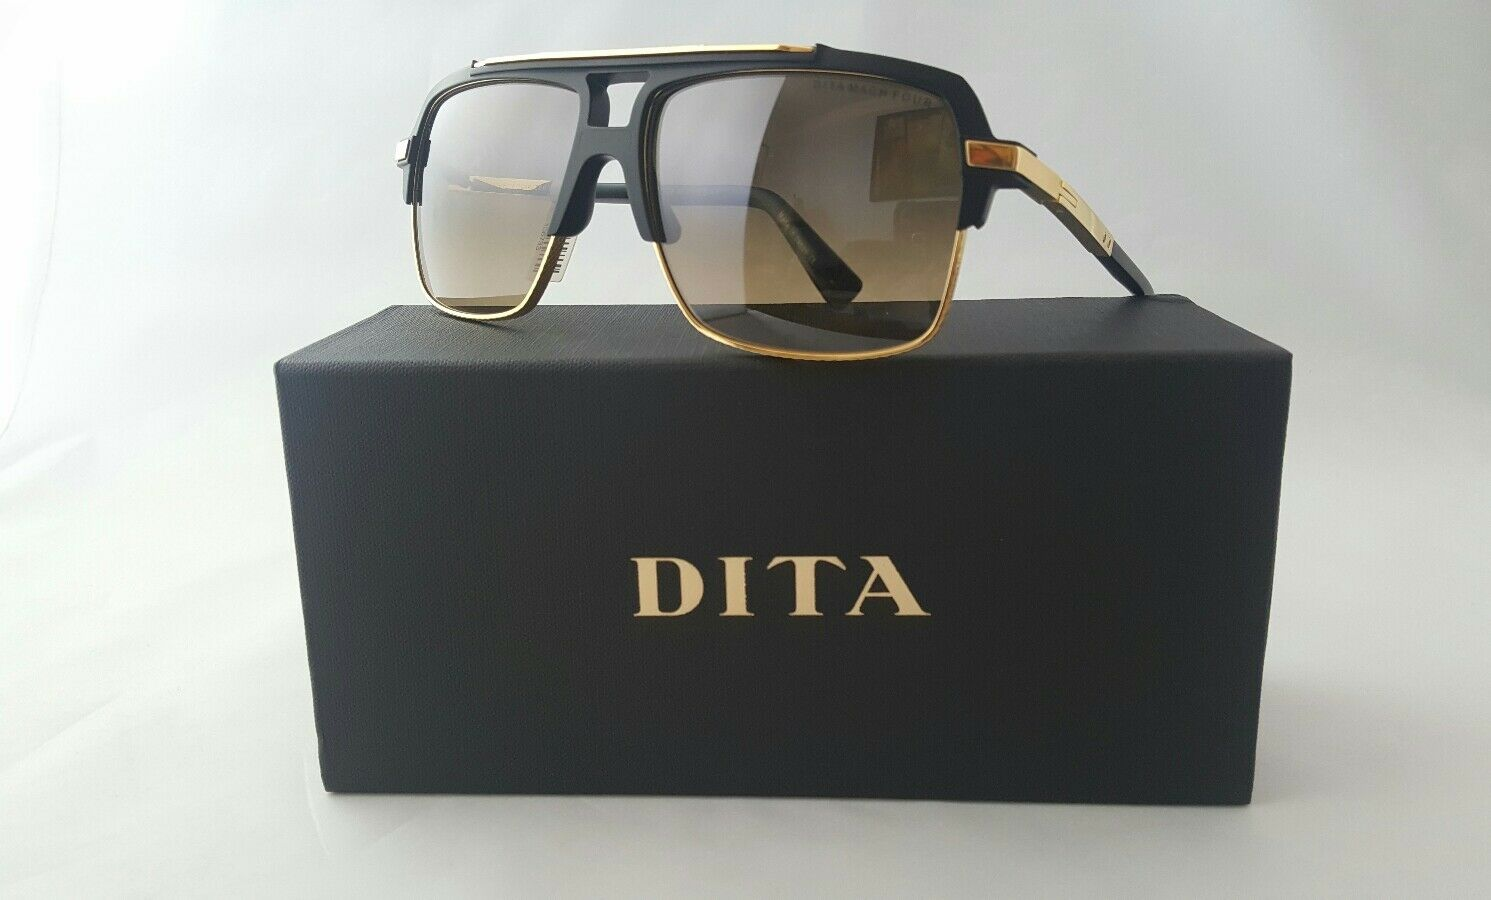 8daee70cc97 DITA Mach Four DRX 2070 a BLK GLD 61 Sunglasses With Case 61mm for ...